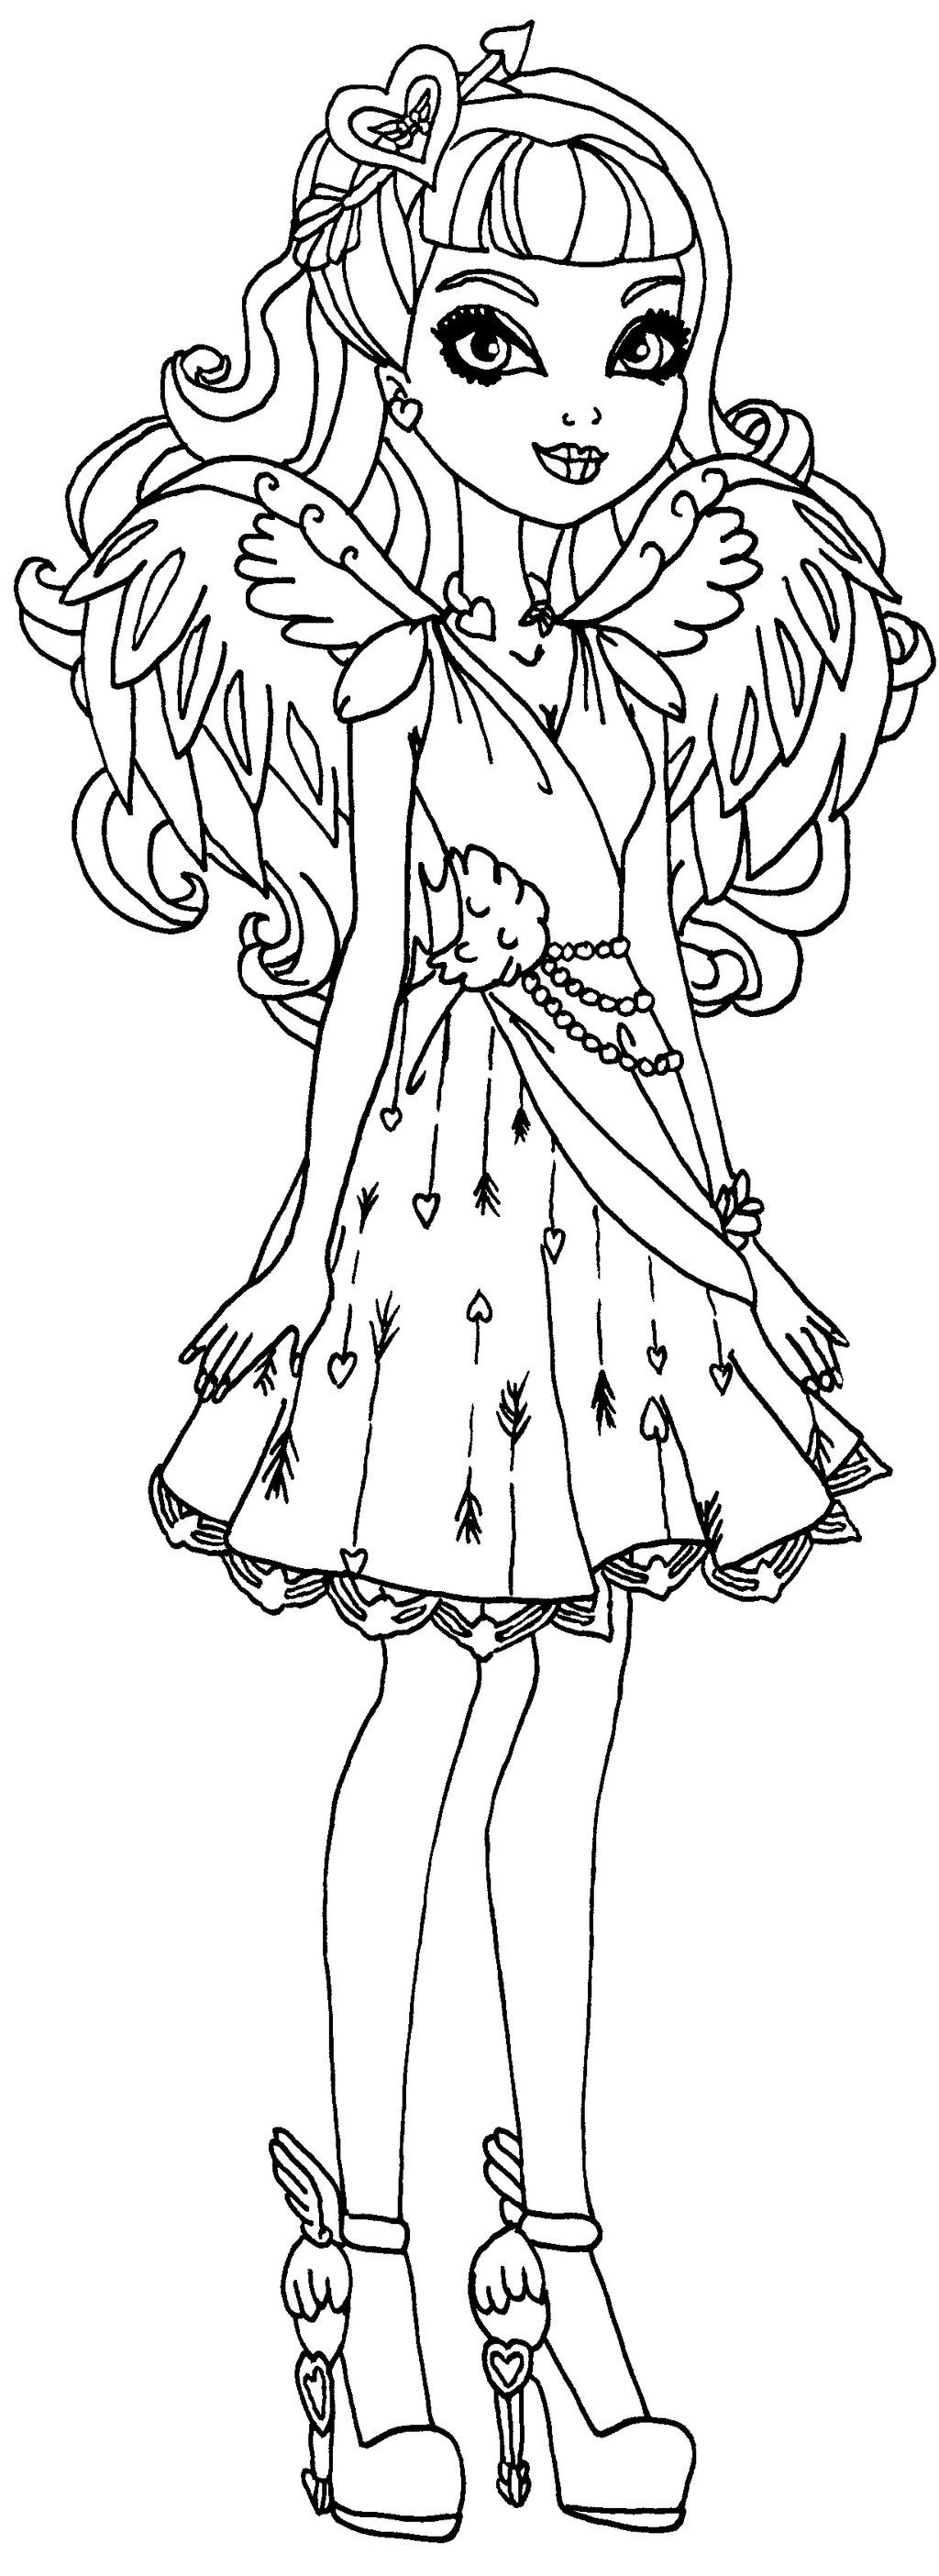 C.A.Cupid Ever After High Cute coloring pages, Emoji